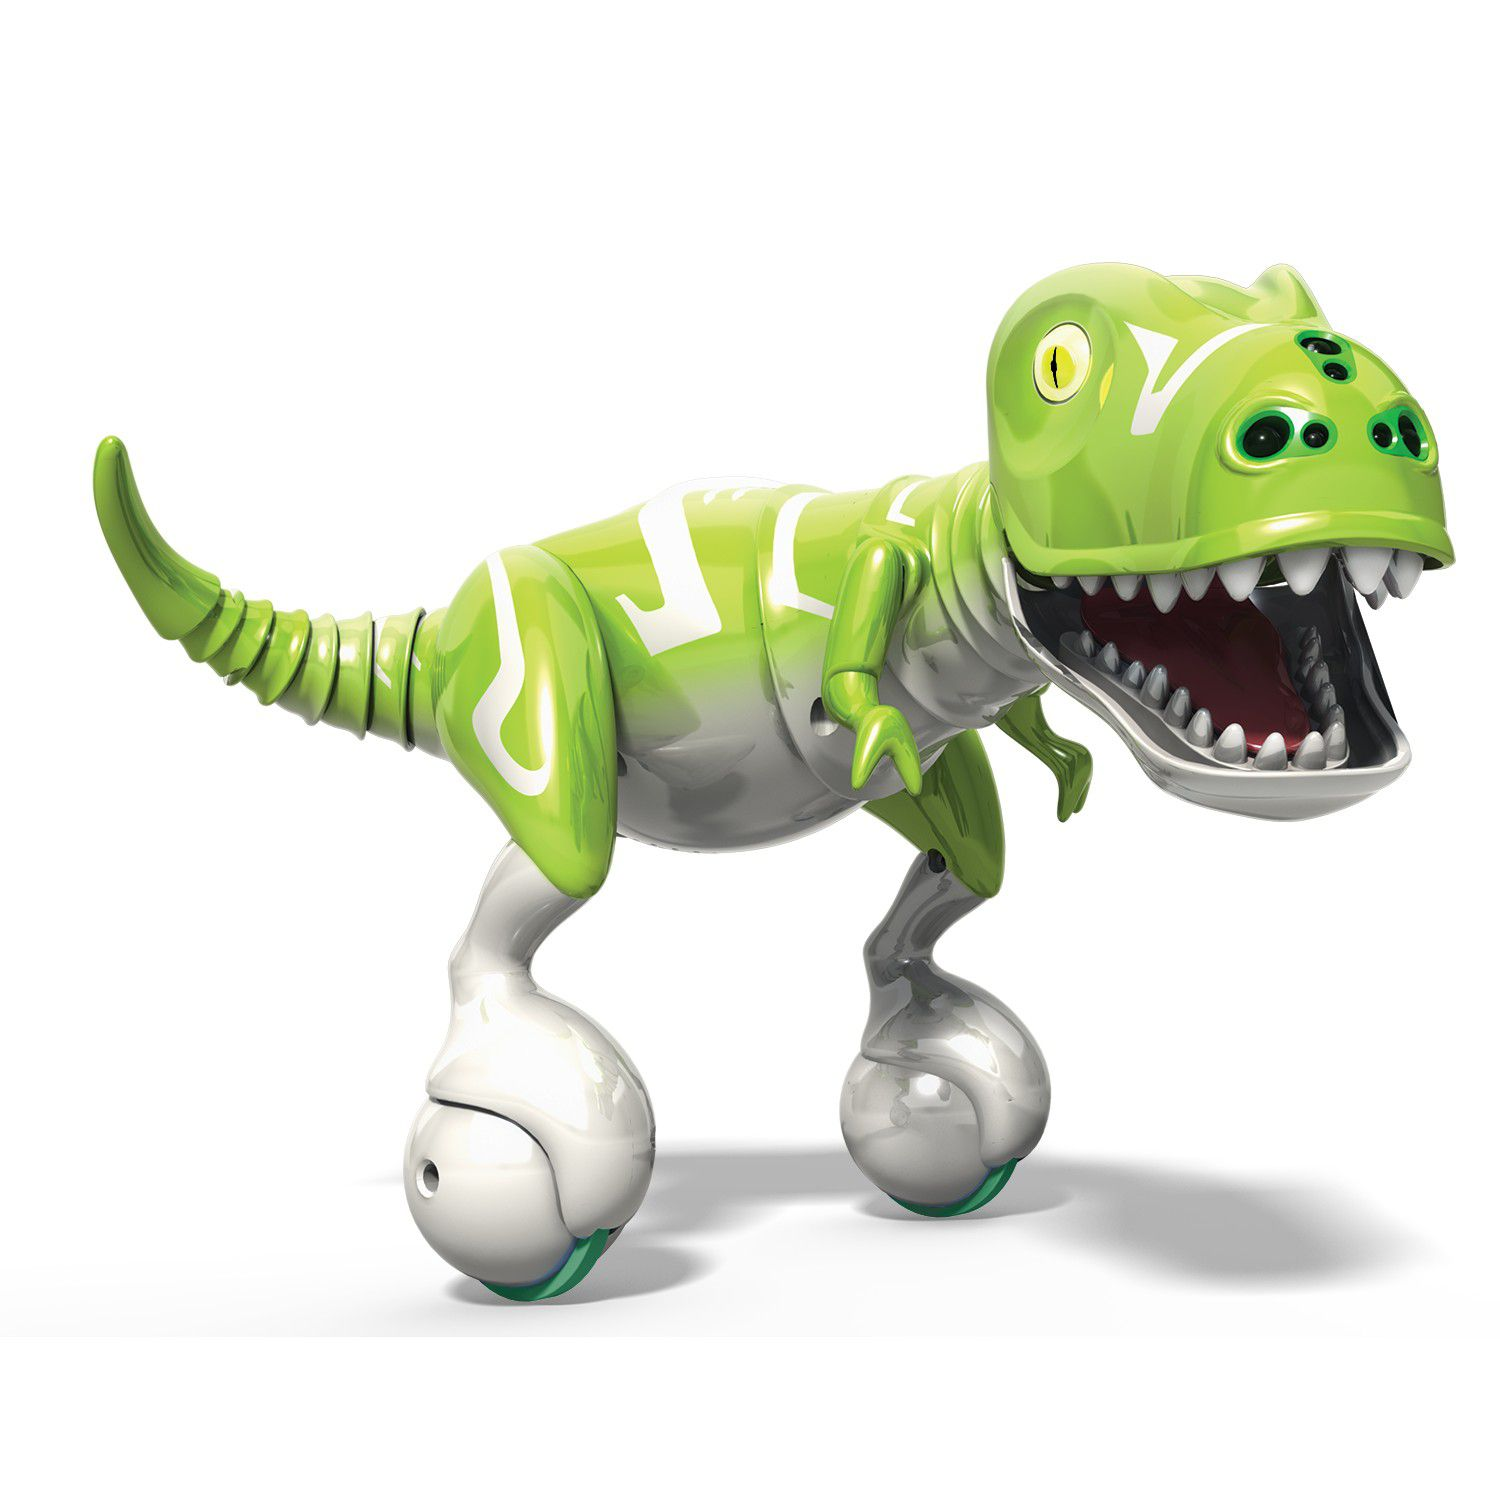 Best Dinosaur Toys : Dinosaur toys for kids